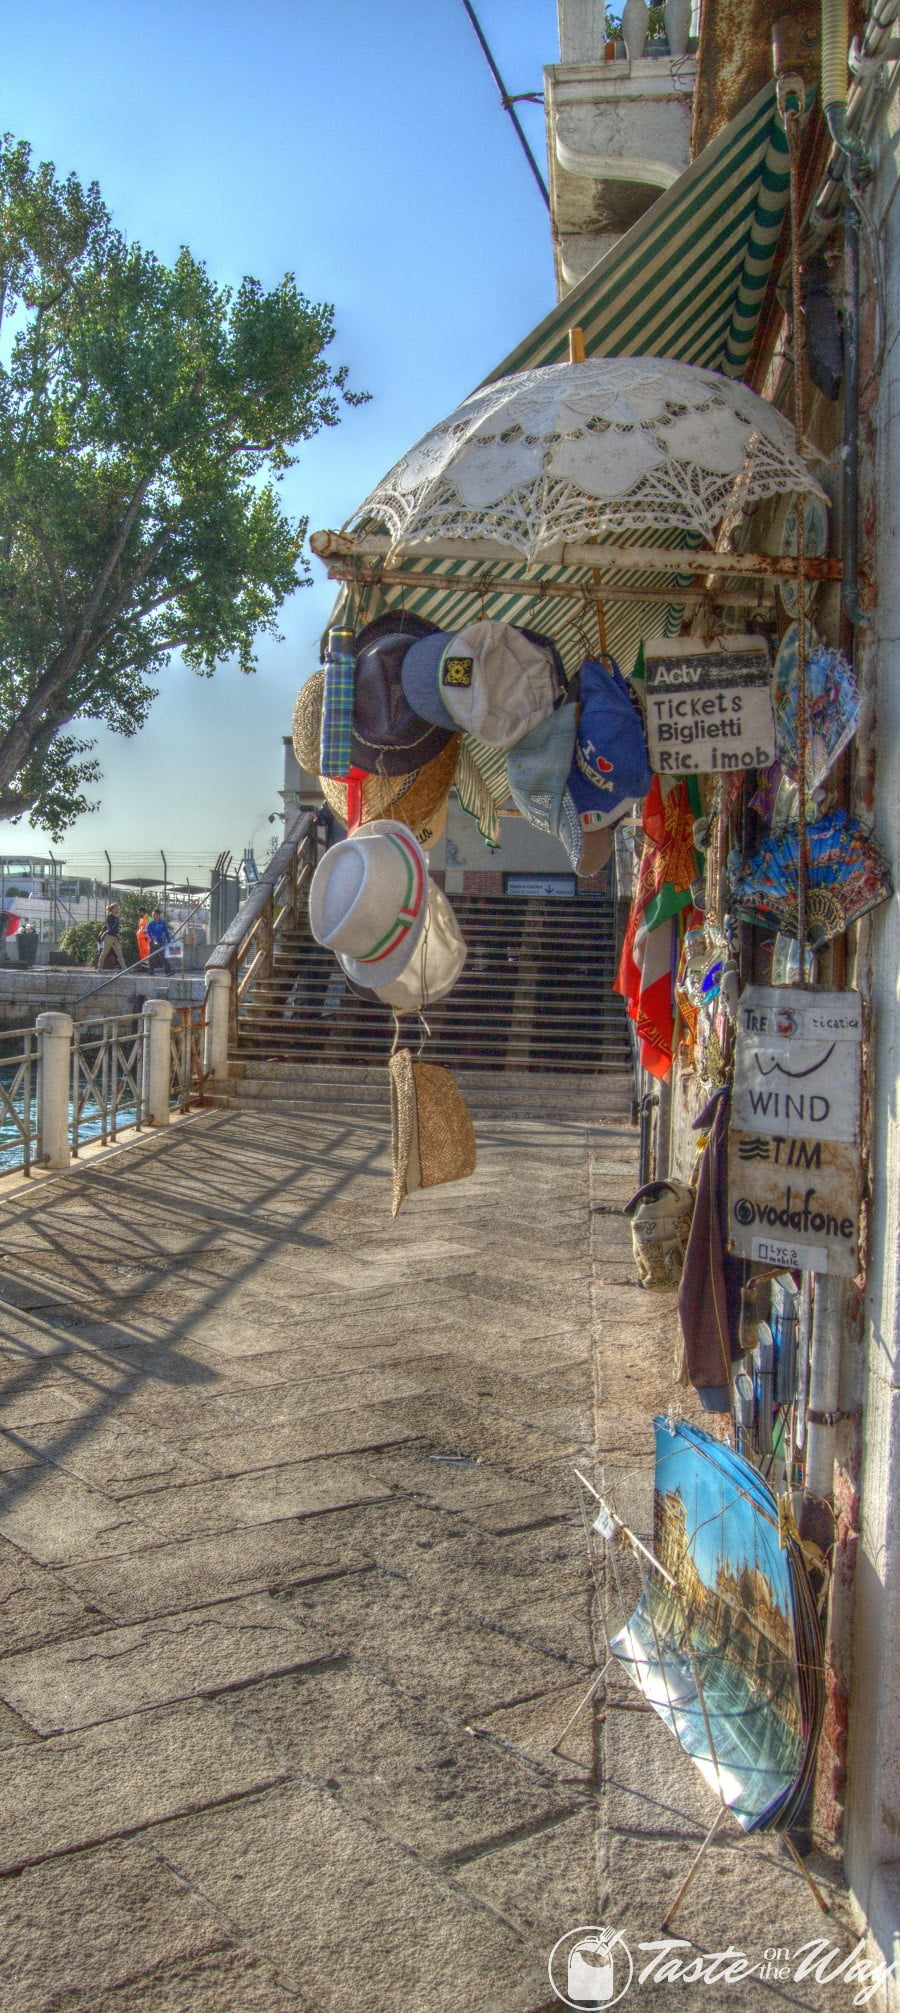 Check out these amazing pictures of souvenir shops in #Venice #travel #photography #hdr